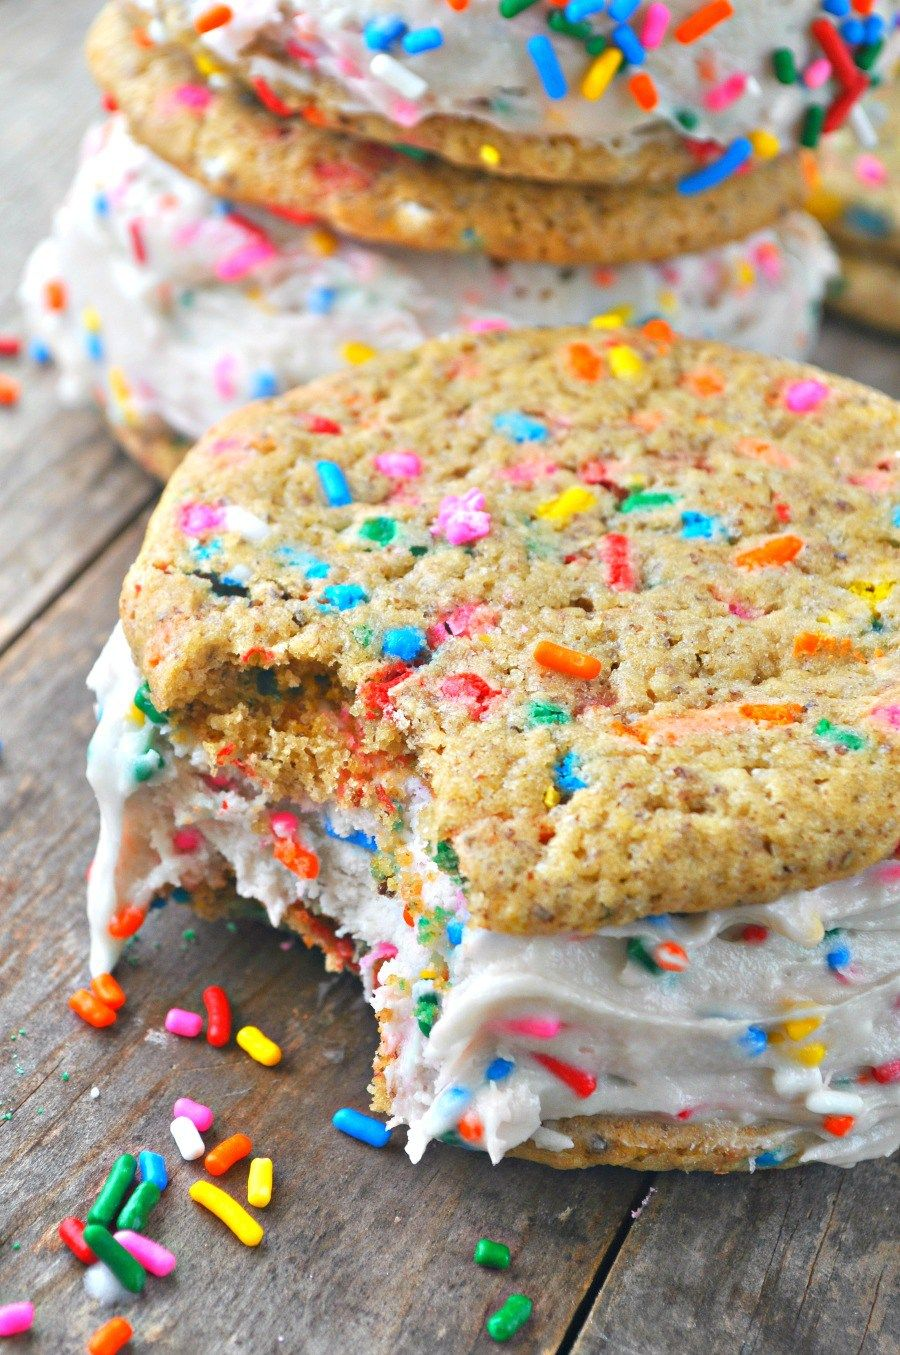 Vegan Birthday Cake Ice Cream Sandwiches Recipe Vegan birthday